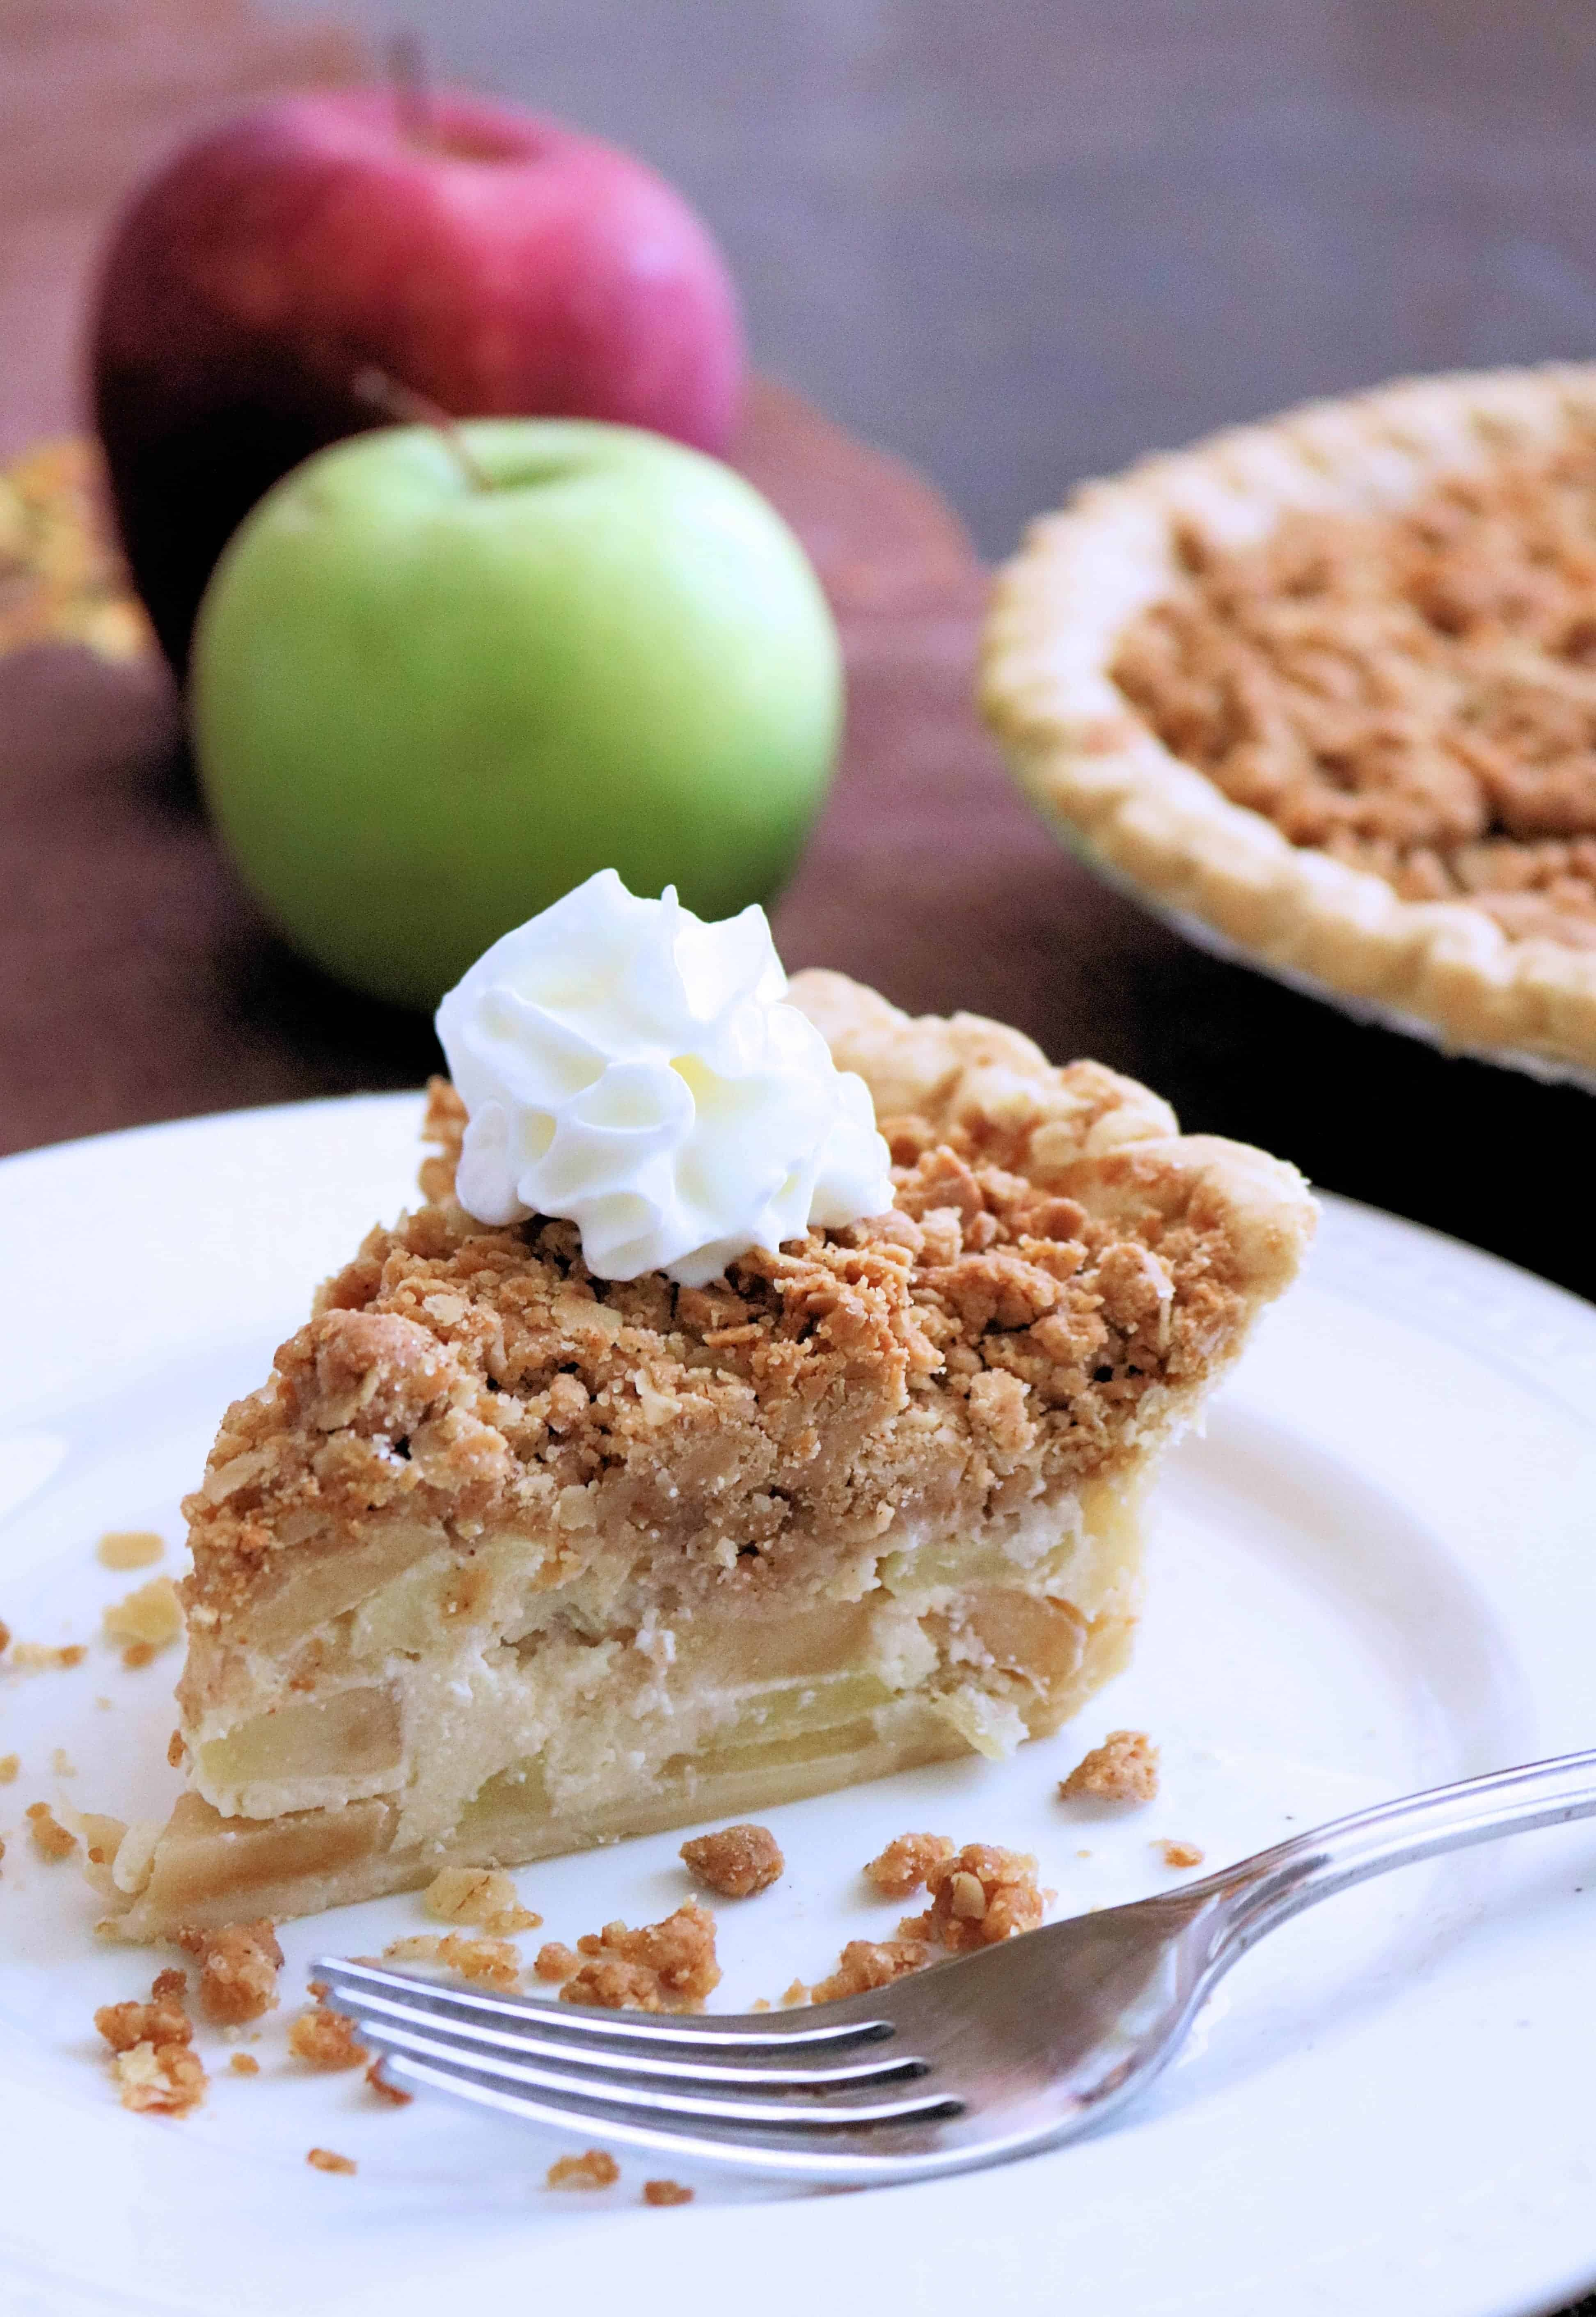 Looking for the best apple pie recipe? Featuring sweet and tart apples and a delicious peanut butter and oats crumble topping this Peanut Butter Apple Crumb Pie is the best apple crumb pie you'll ever eat! #applepie #applepierecipe